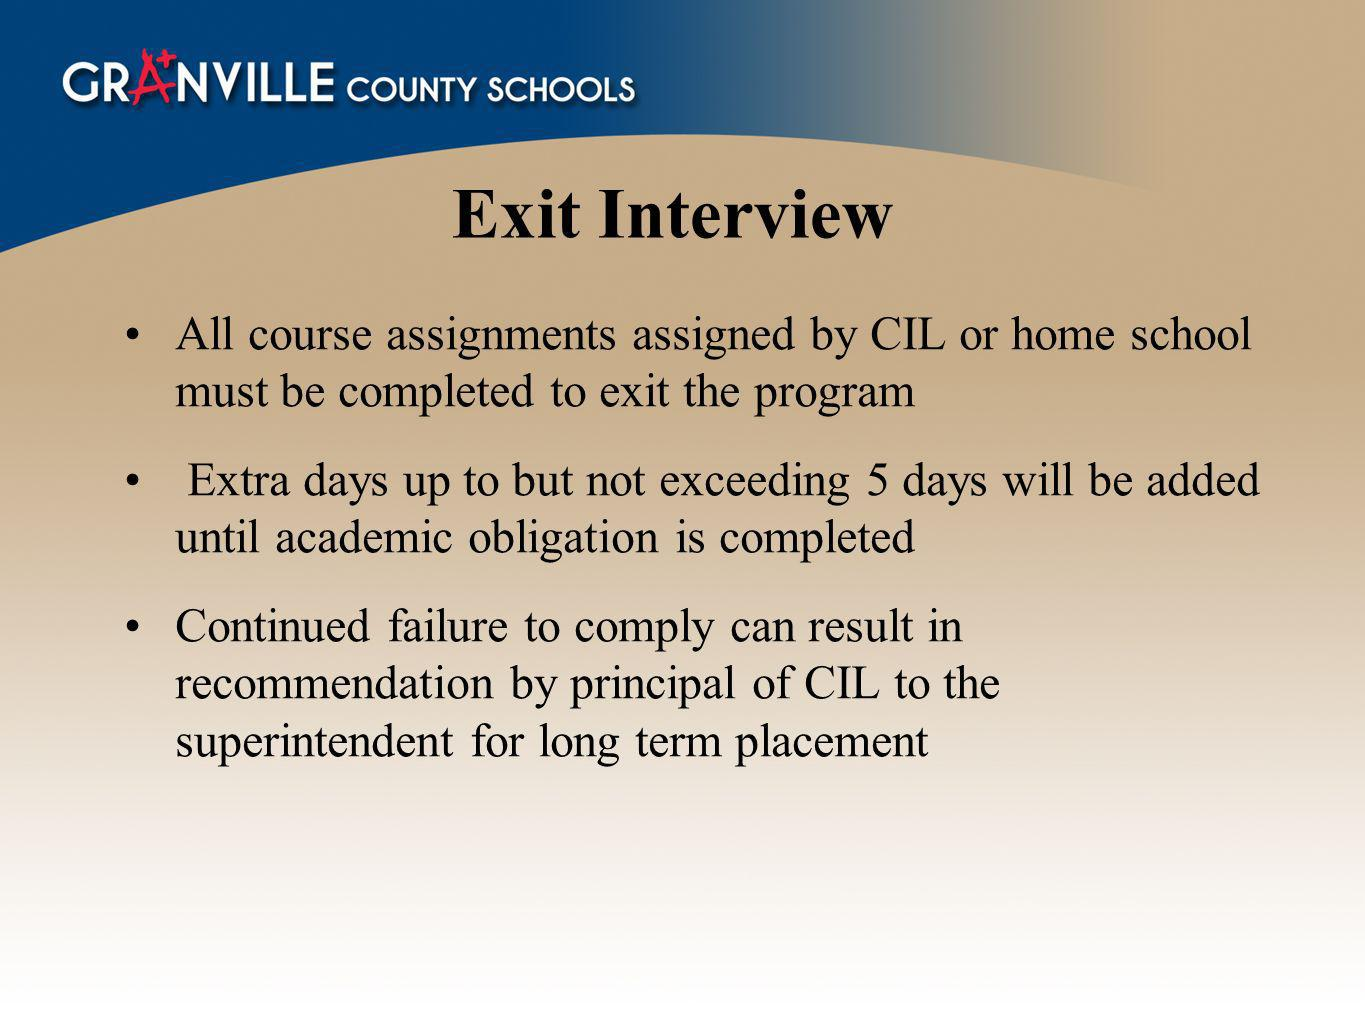 Exit Interview All course assignments assigned by CIL or home school must be completed to exit the program.